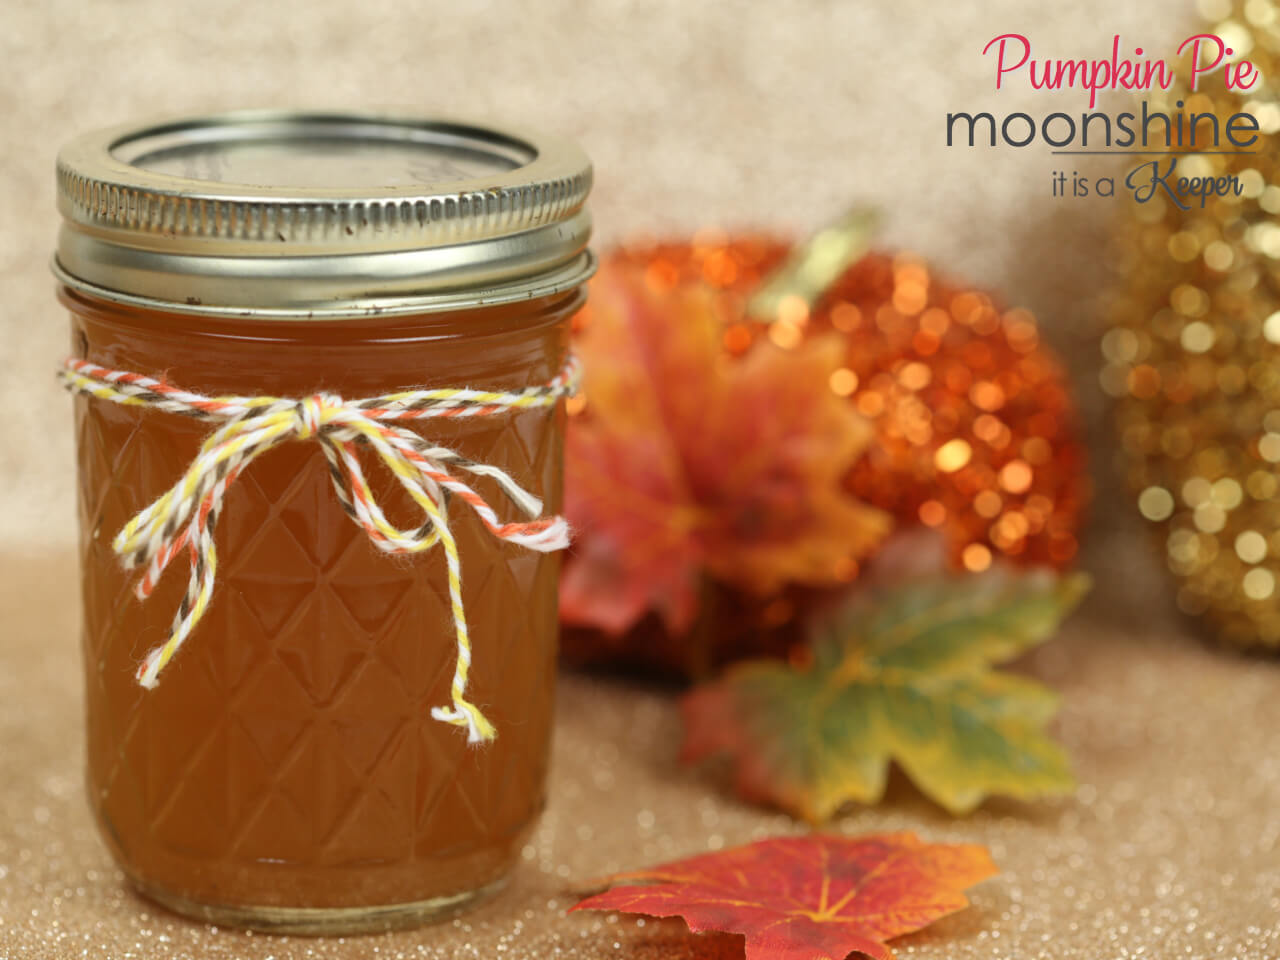 Pumpkin Pie Moonshine in a mason jar with leaves in the background.